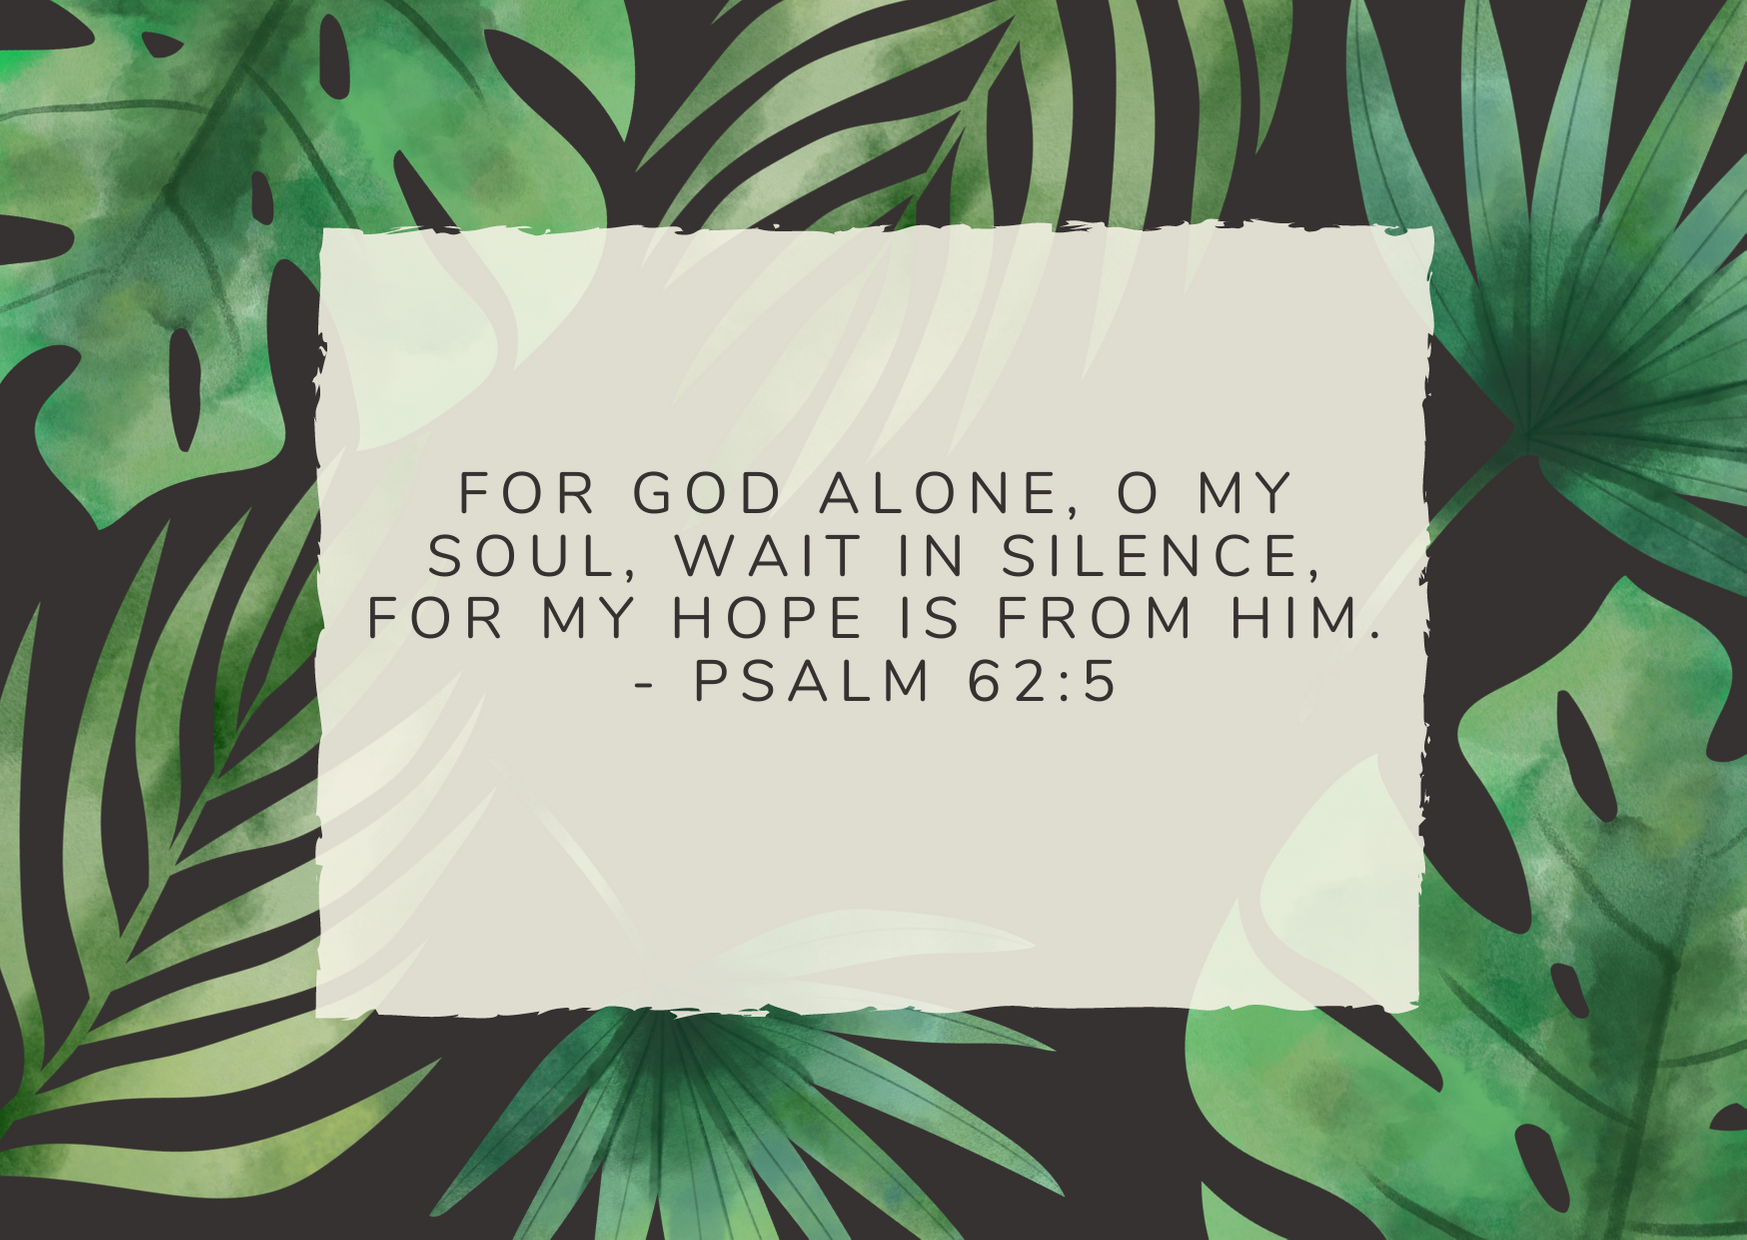 For God alone, O my soul, wait in silence, for my hope is from him. - Psalm 62:5